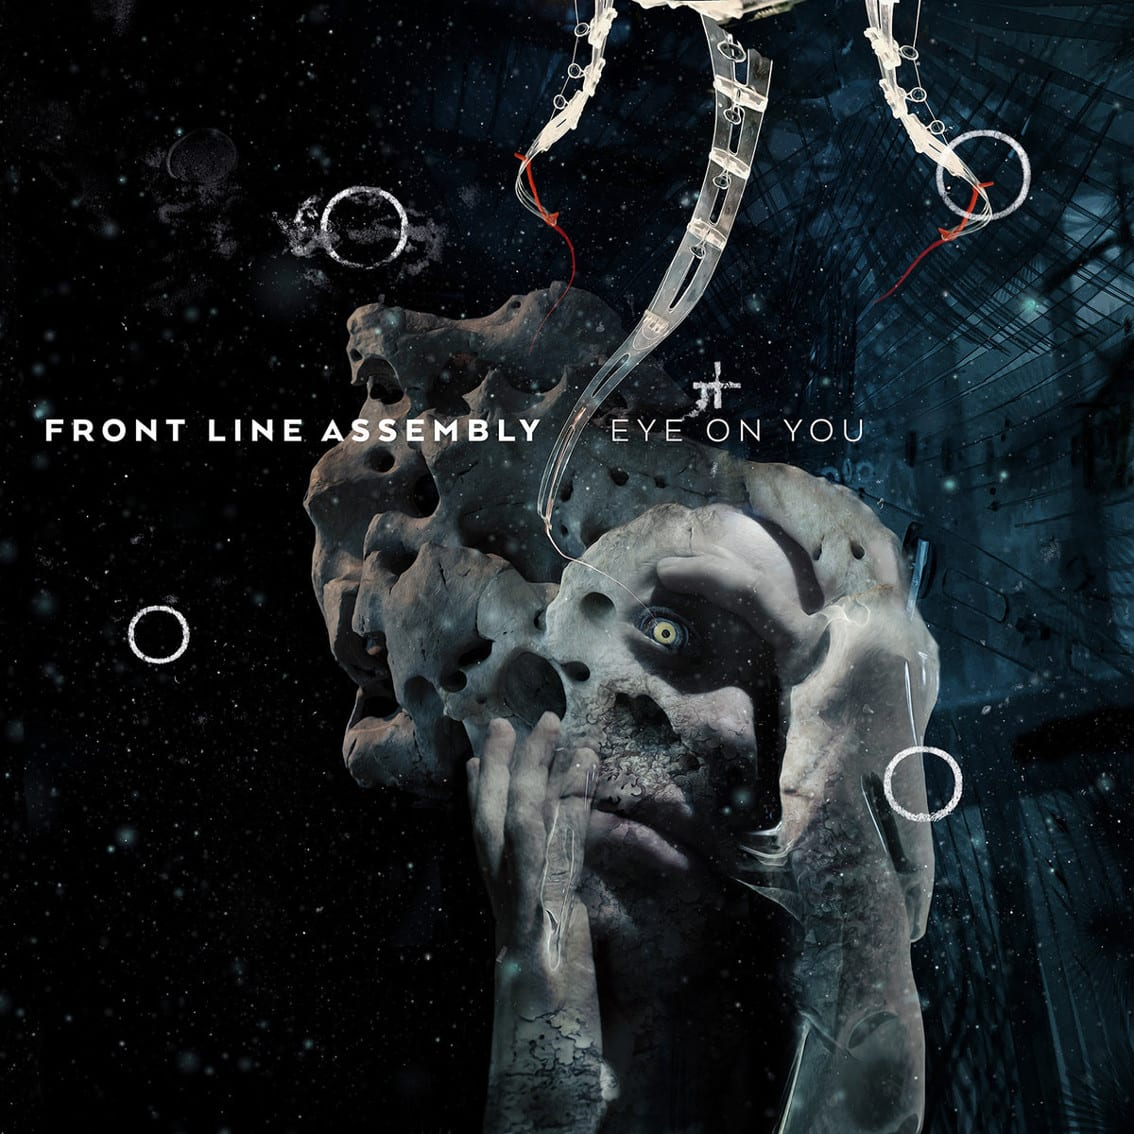 Front Line Assembly to release new single featuring Robert Görl of D.A.F. - here's a preview